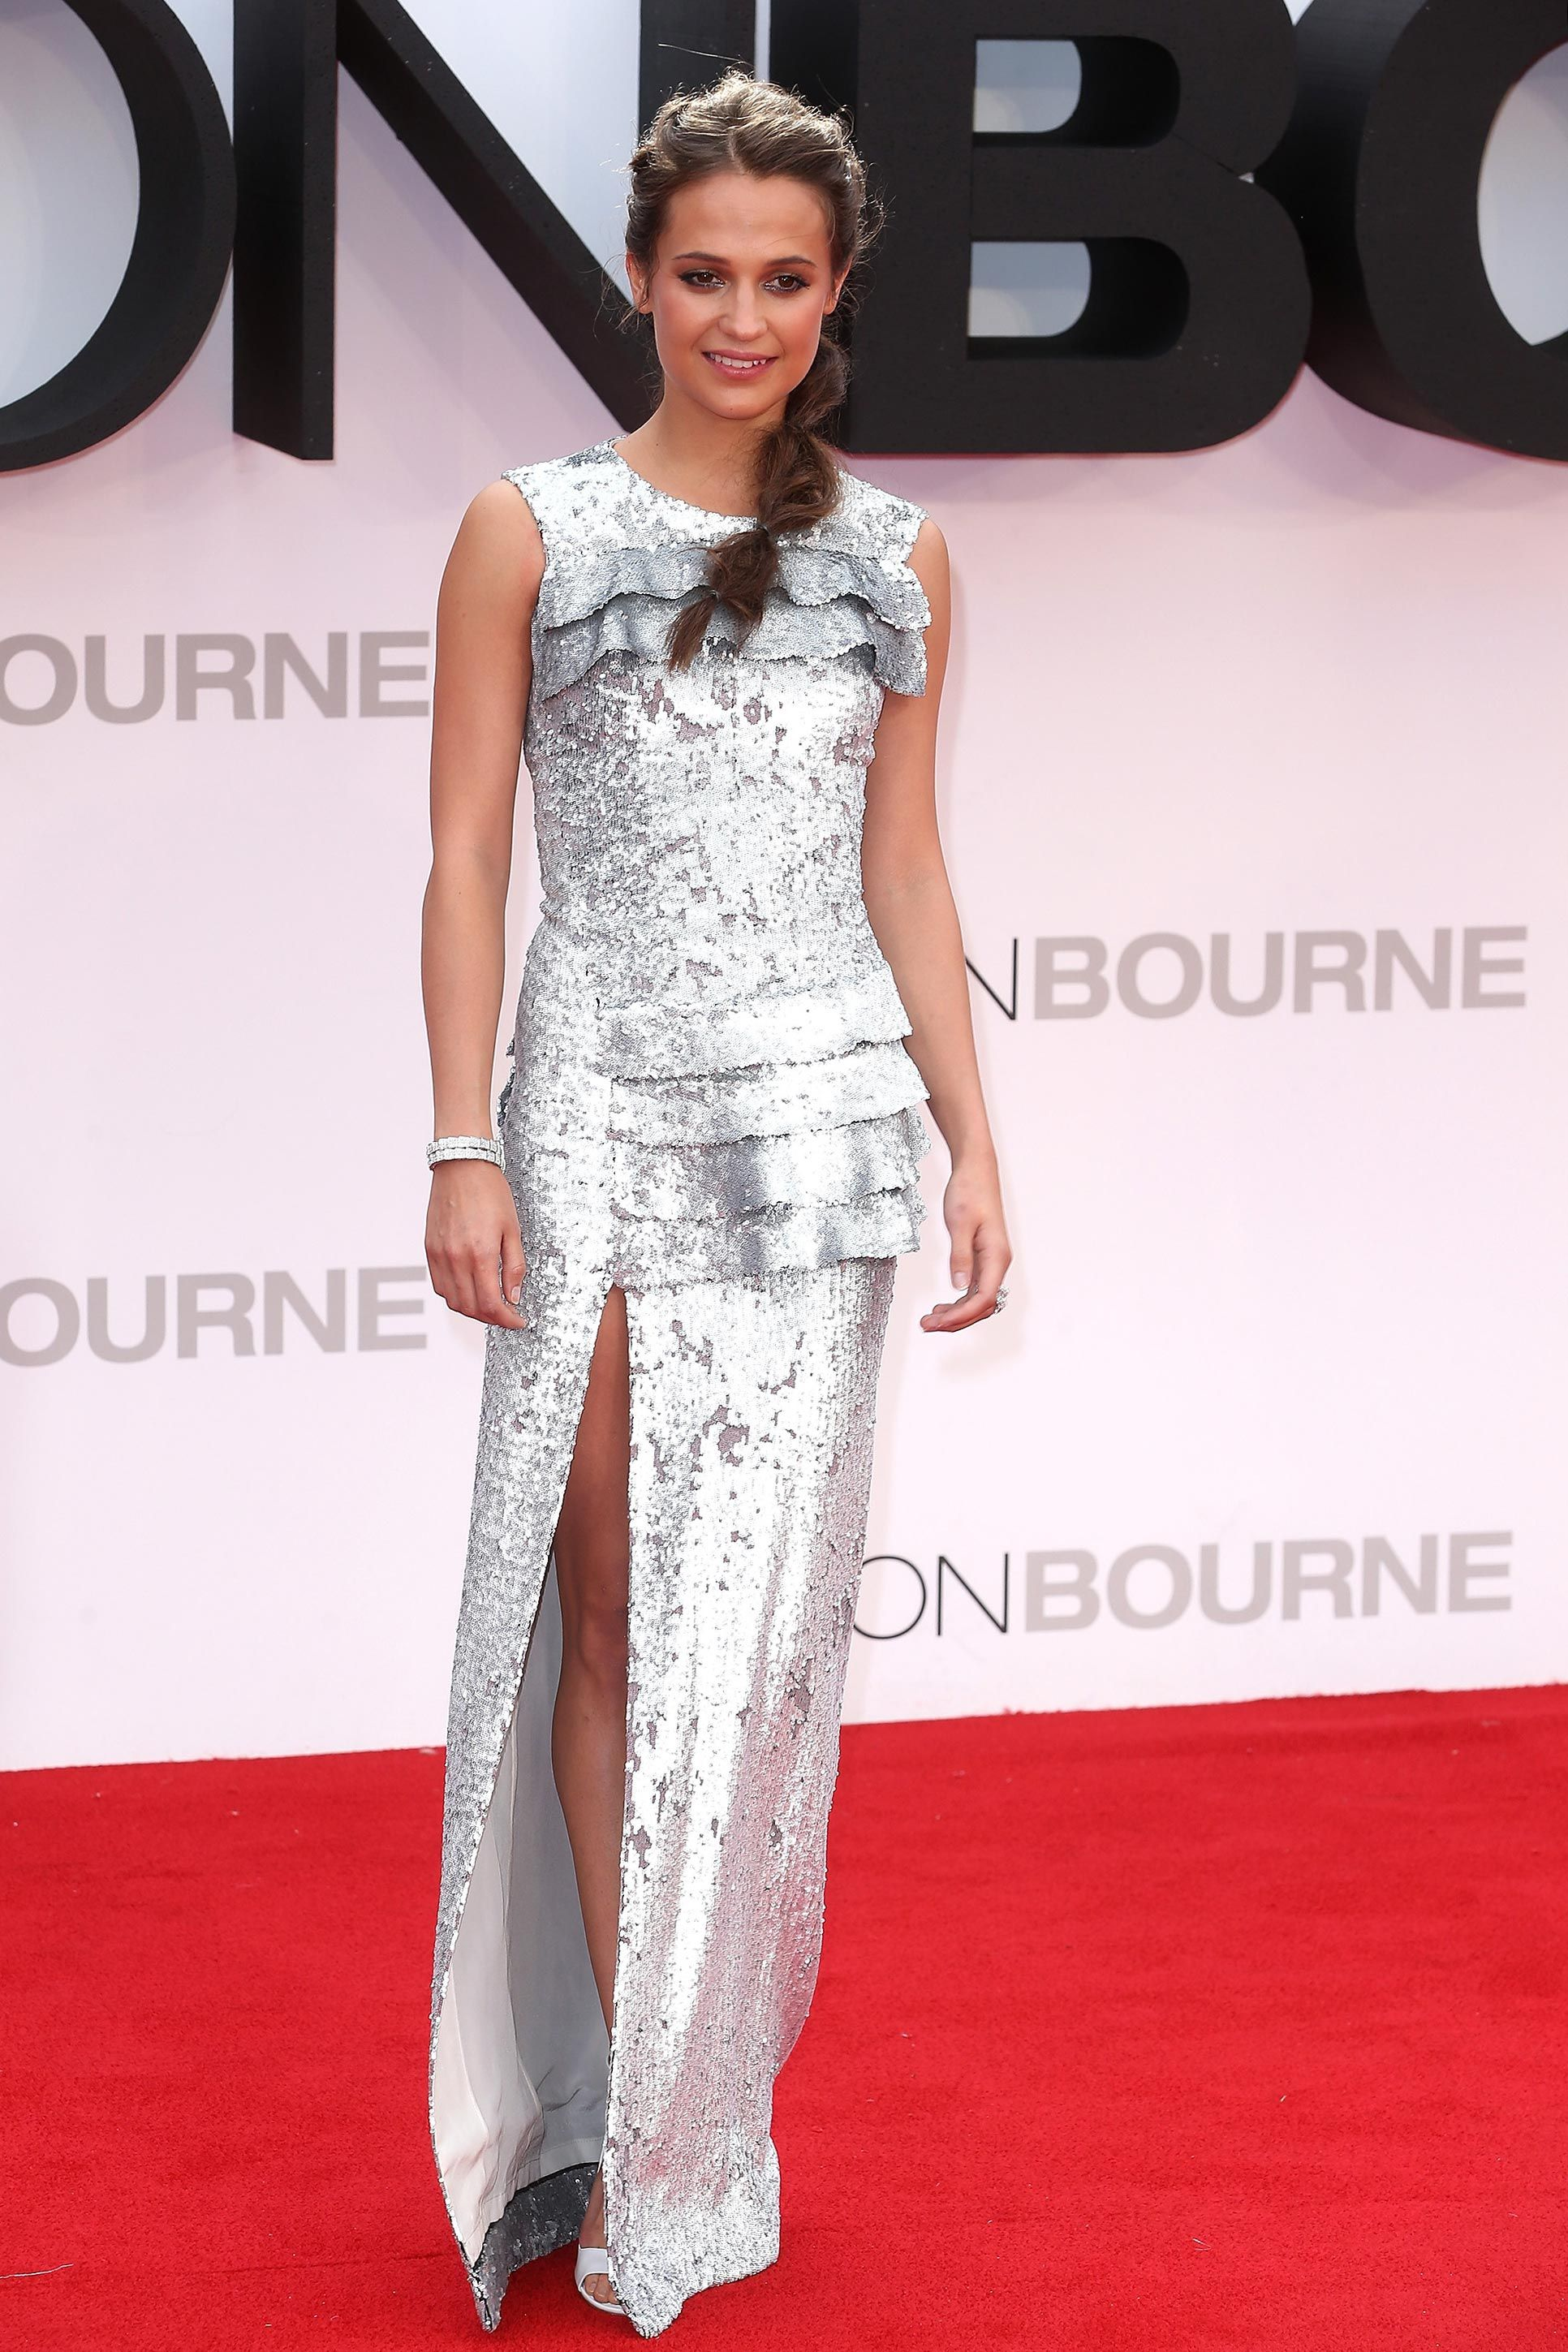 Alicia Vikander's Shining, Silver-Sequined Red Carpet Moment